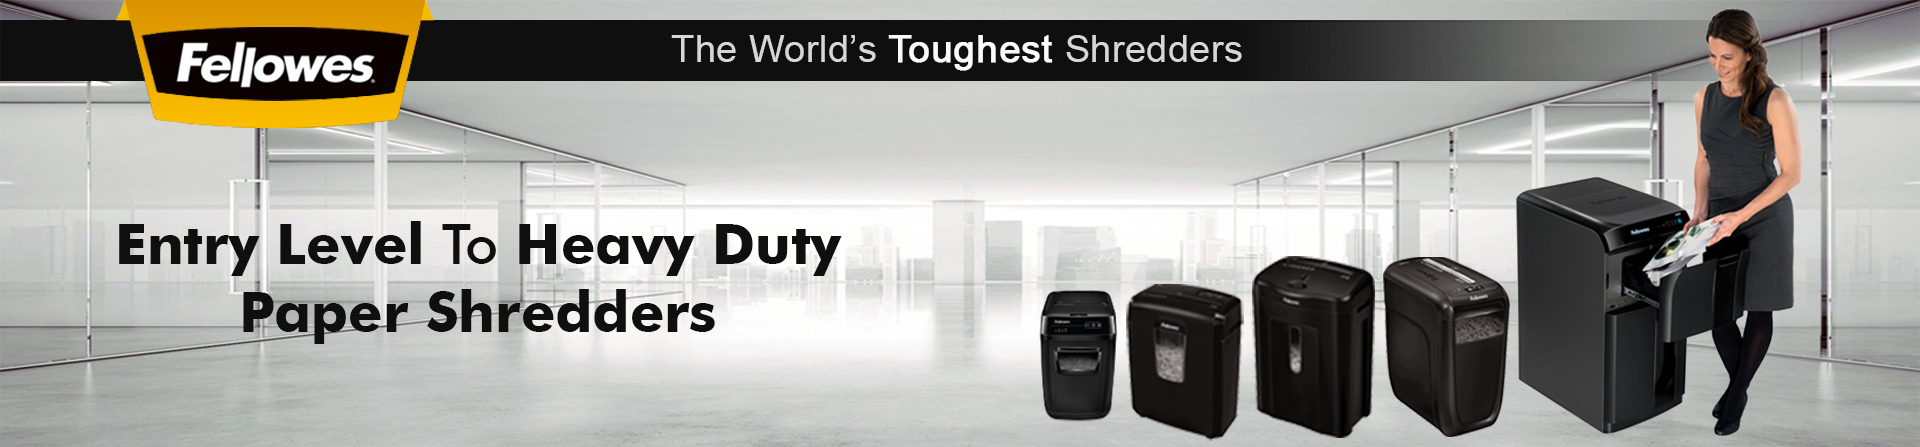 fellowes-shredders